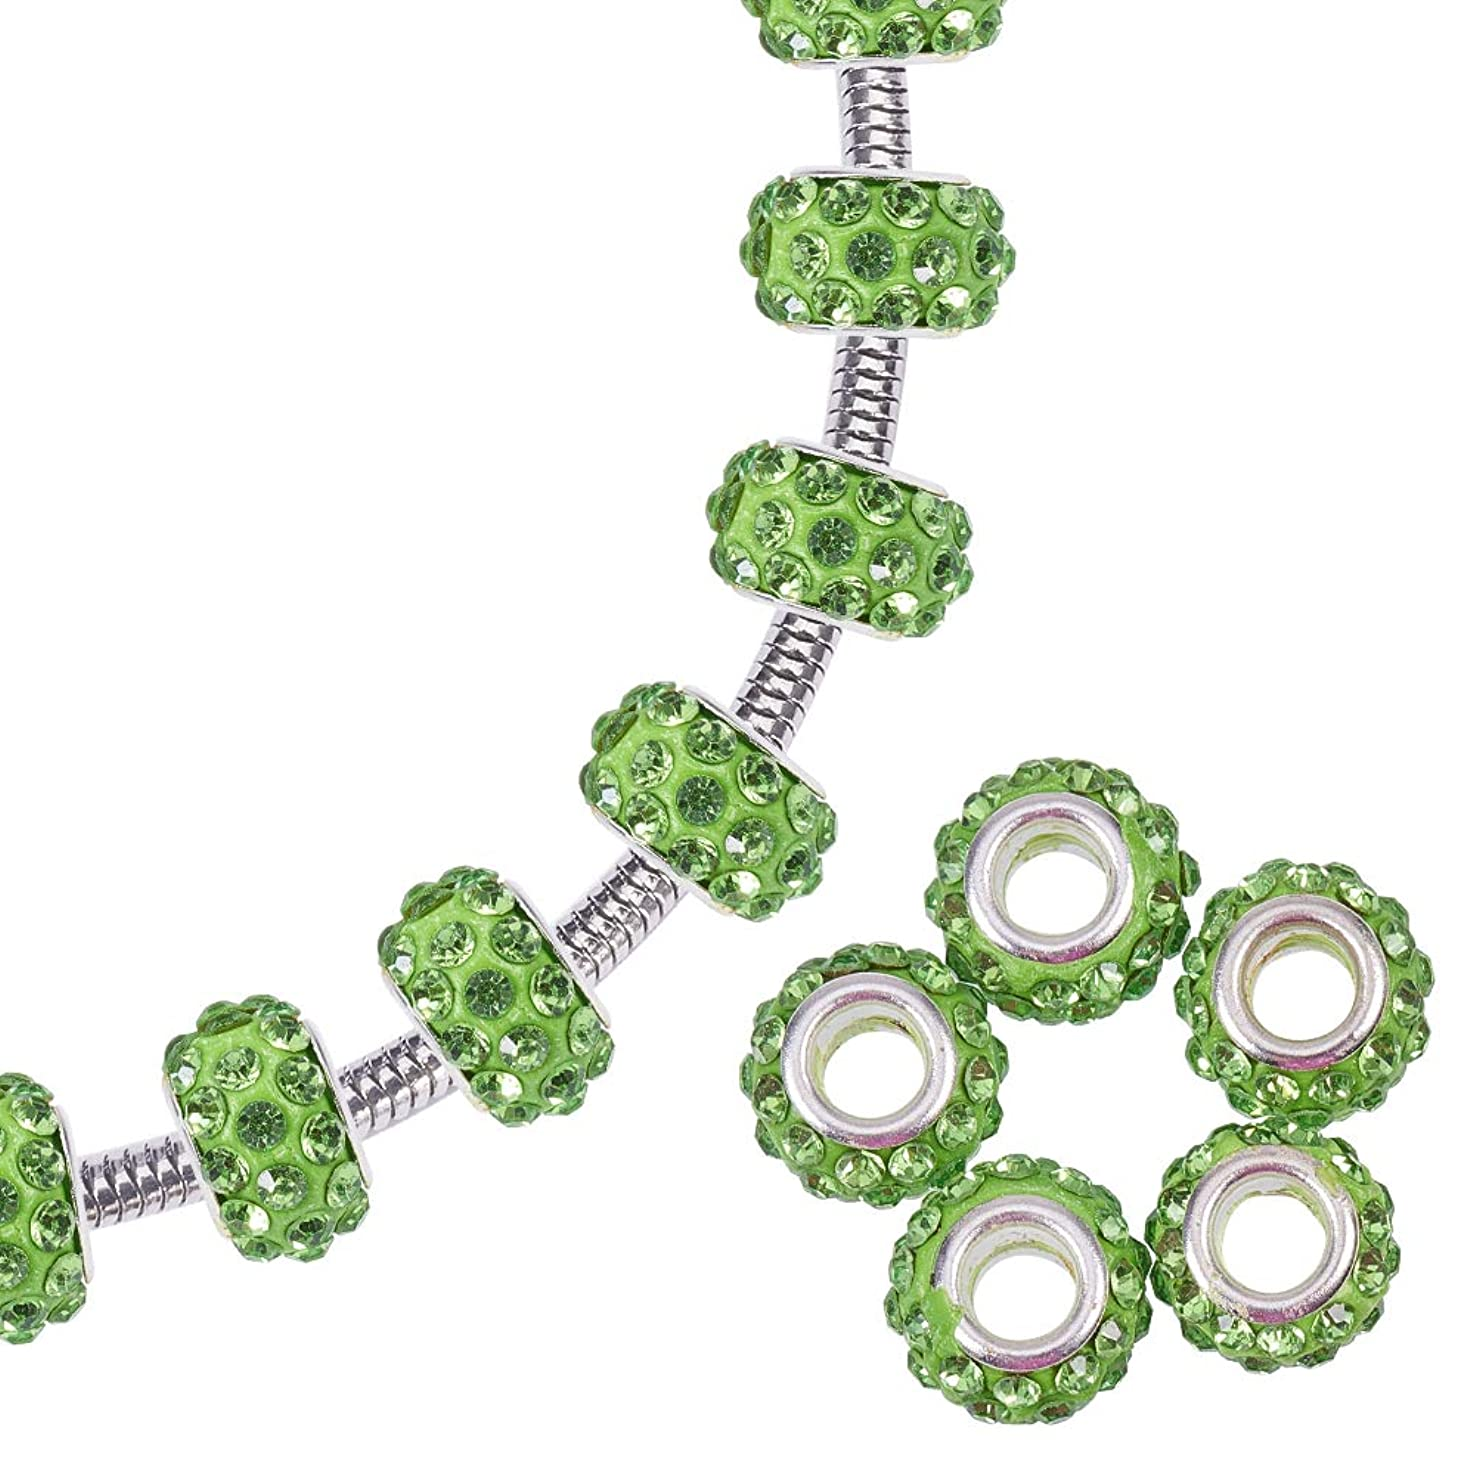 NBEADS 100 Pcs Polymer Clay Crystal Rhinestone European Beads Large Hole fit Charm Bracelet,Peridot,11~12mm in Diameter,7~7.5mm Thick, Hole: 5mm